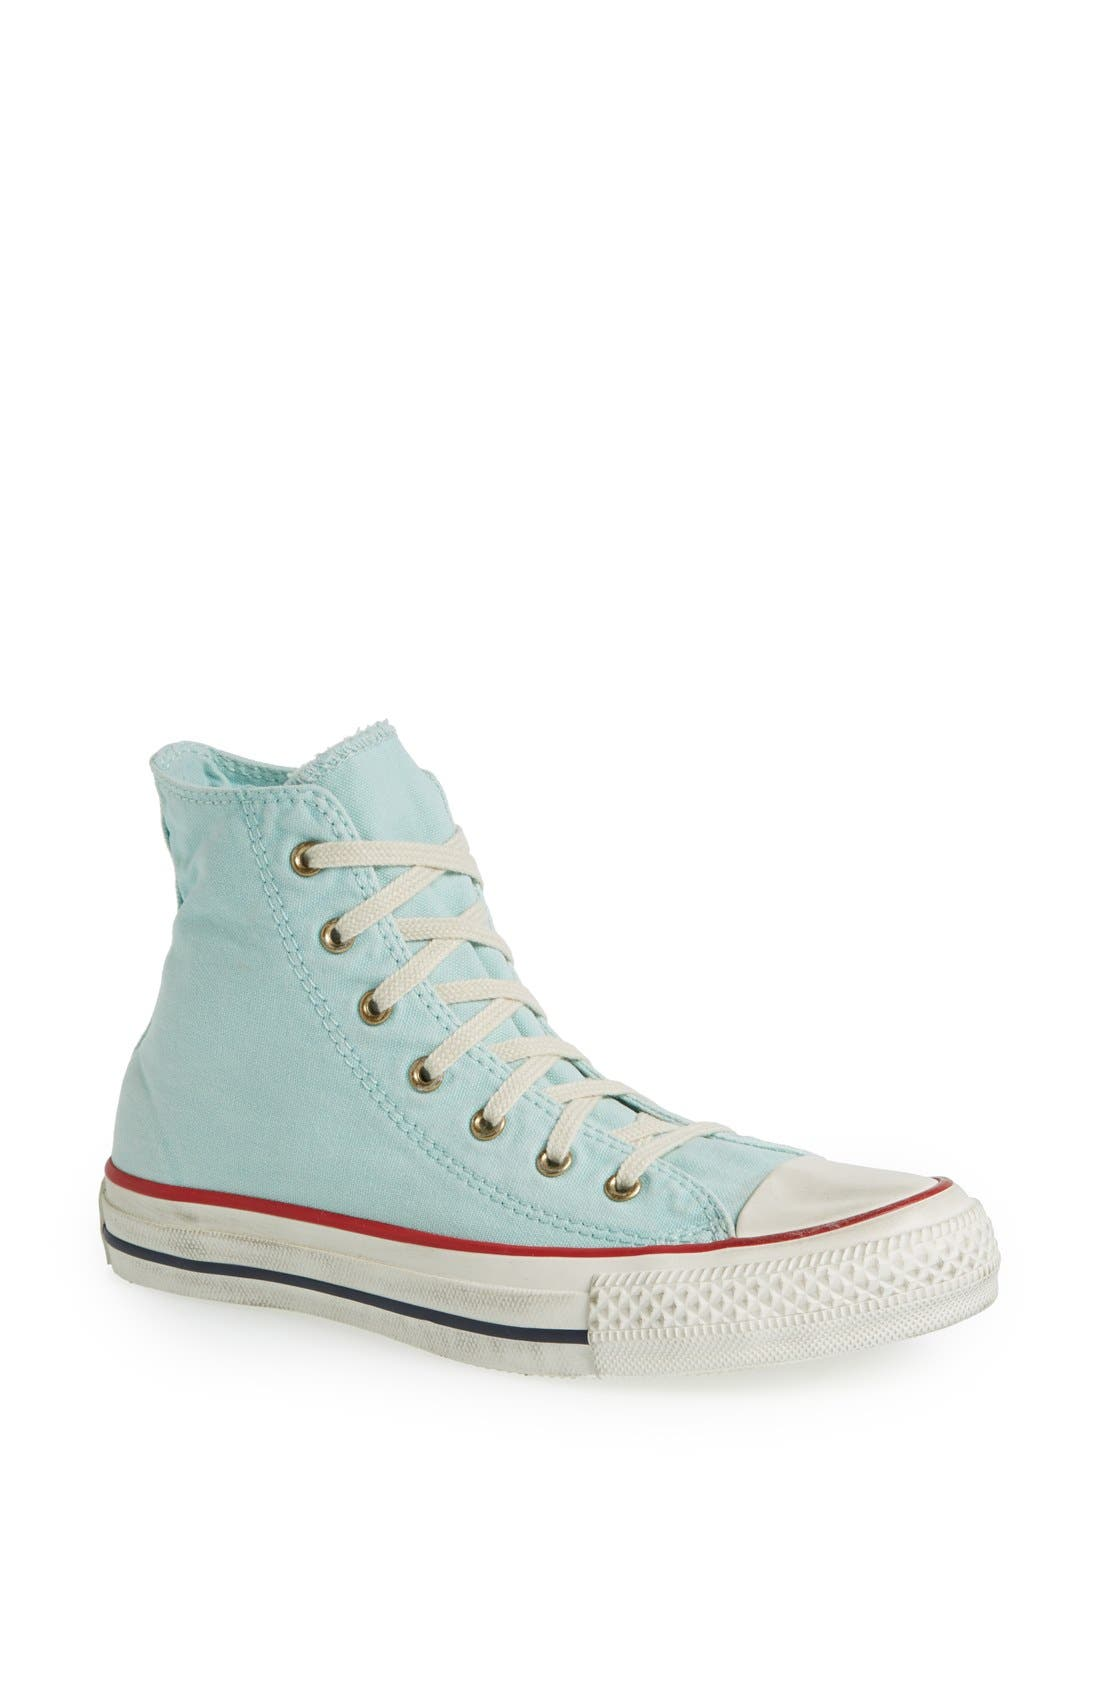 Alternate Image 1 Selected - Converse Chuck Taylor® All Star® Washed Canvas High Top Sneaker (Women)